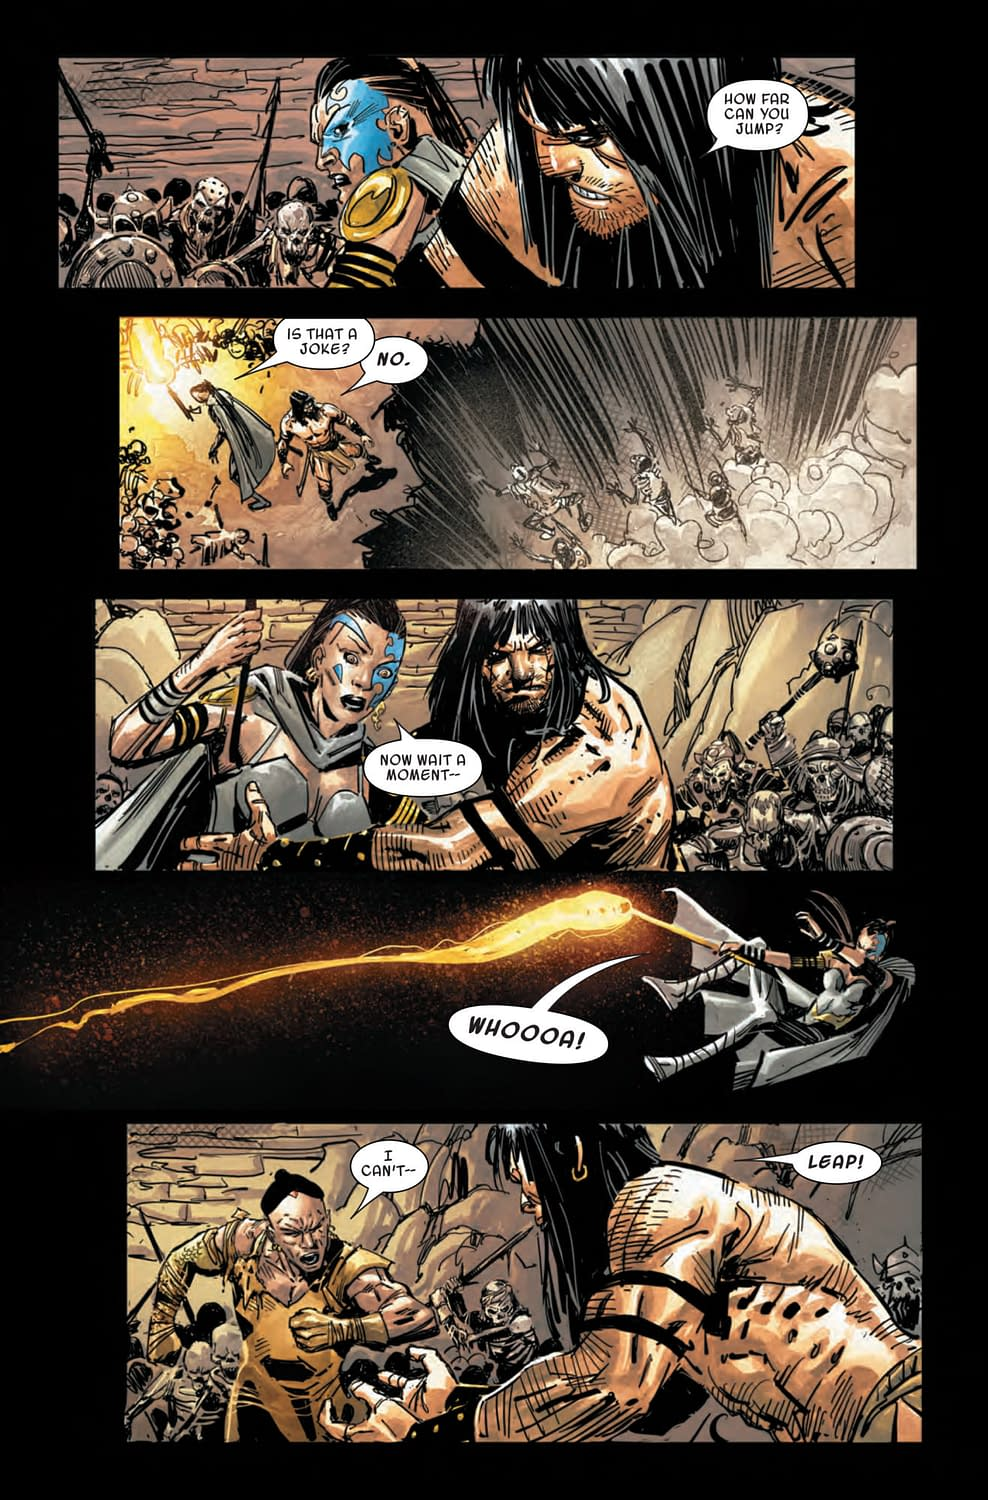 Hyperborean Sexism in Next Week's Savage Sword of Conan #4